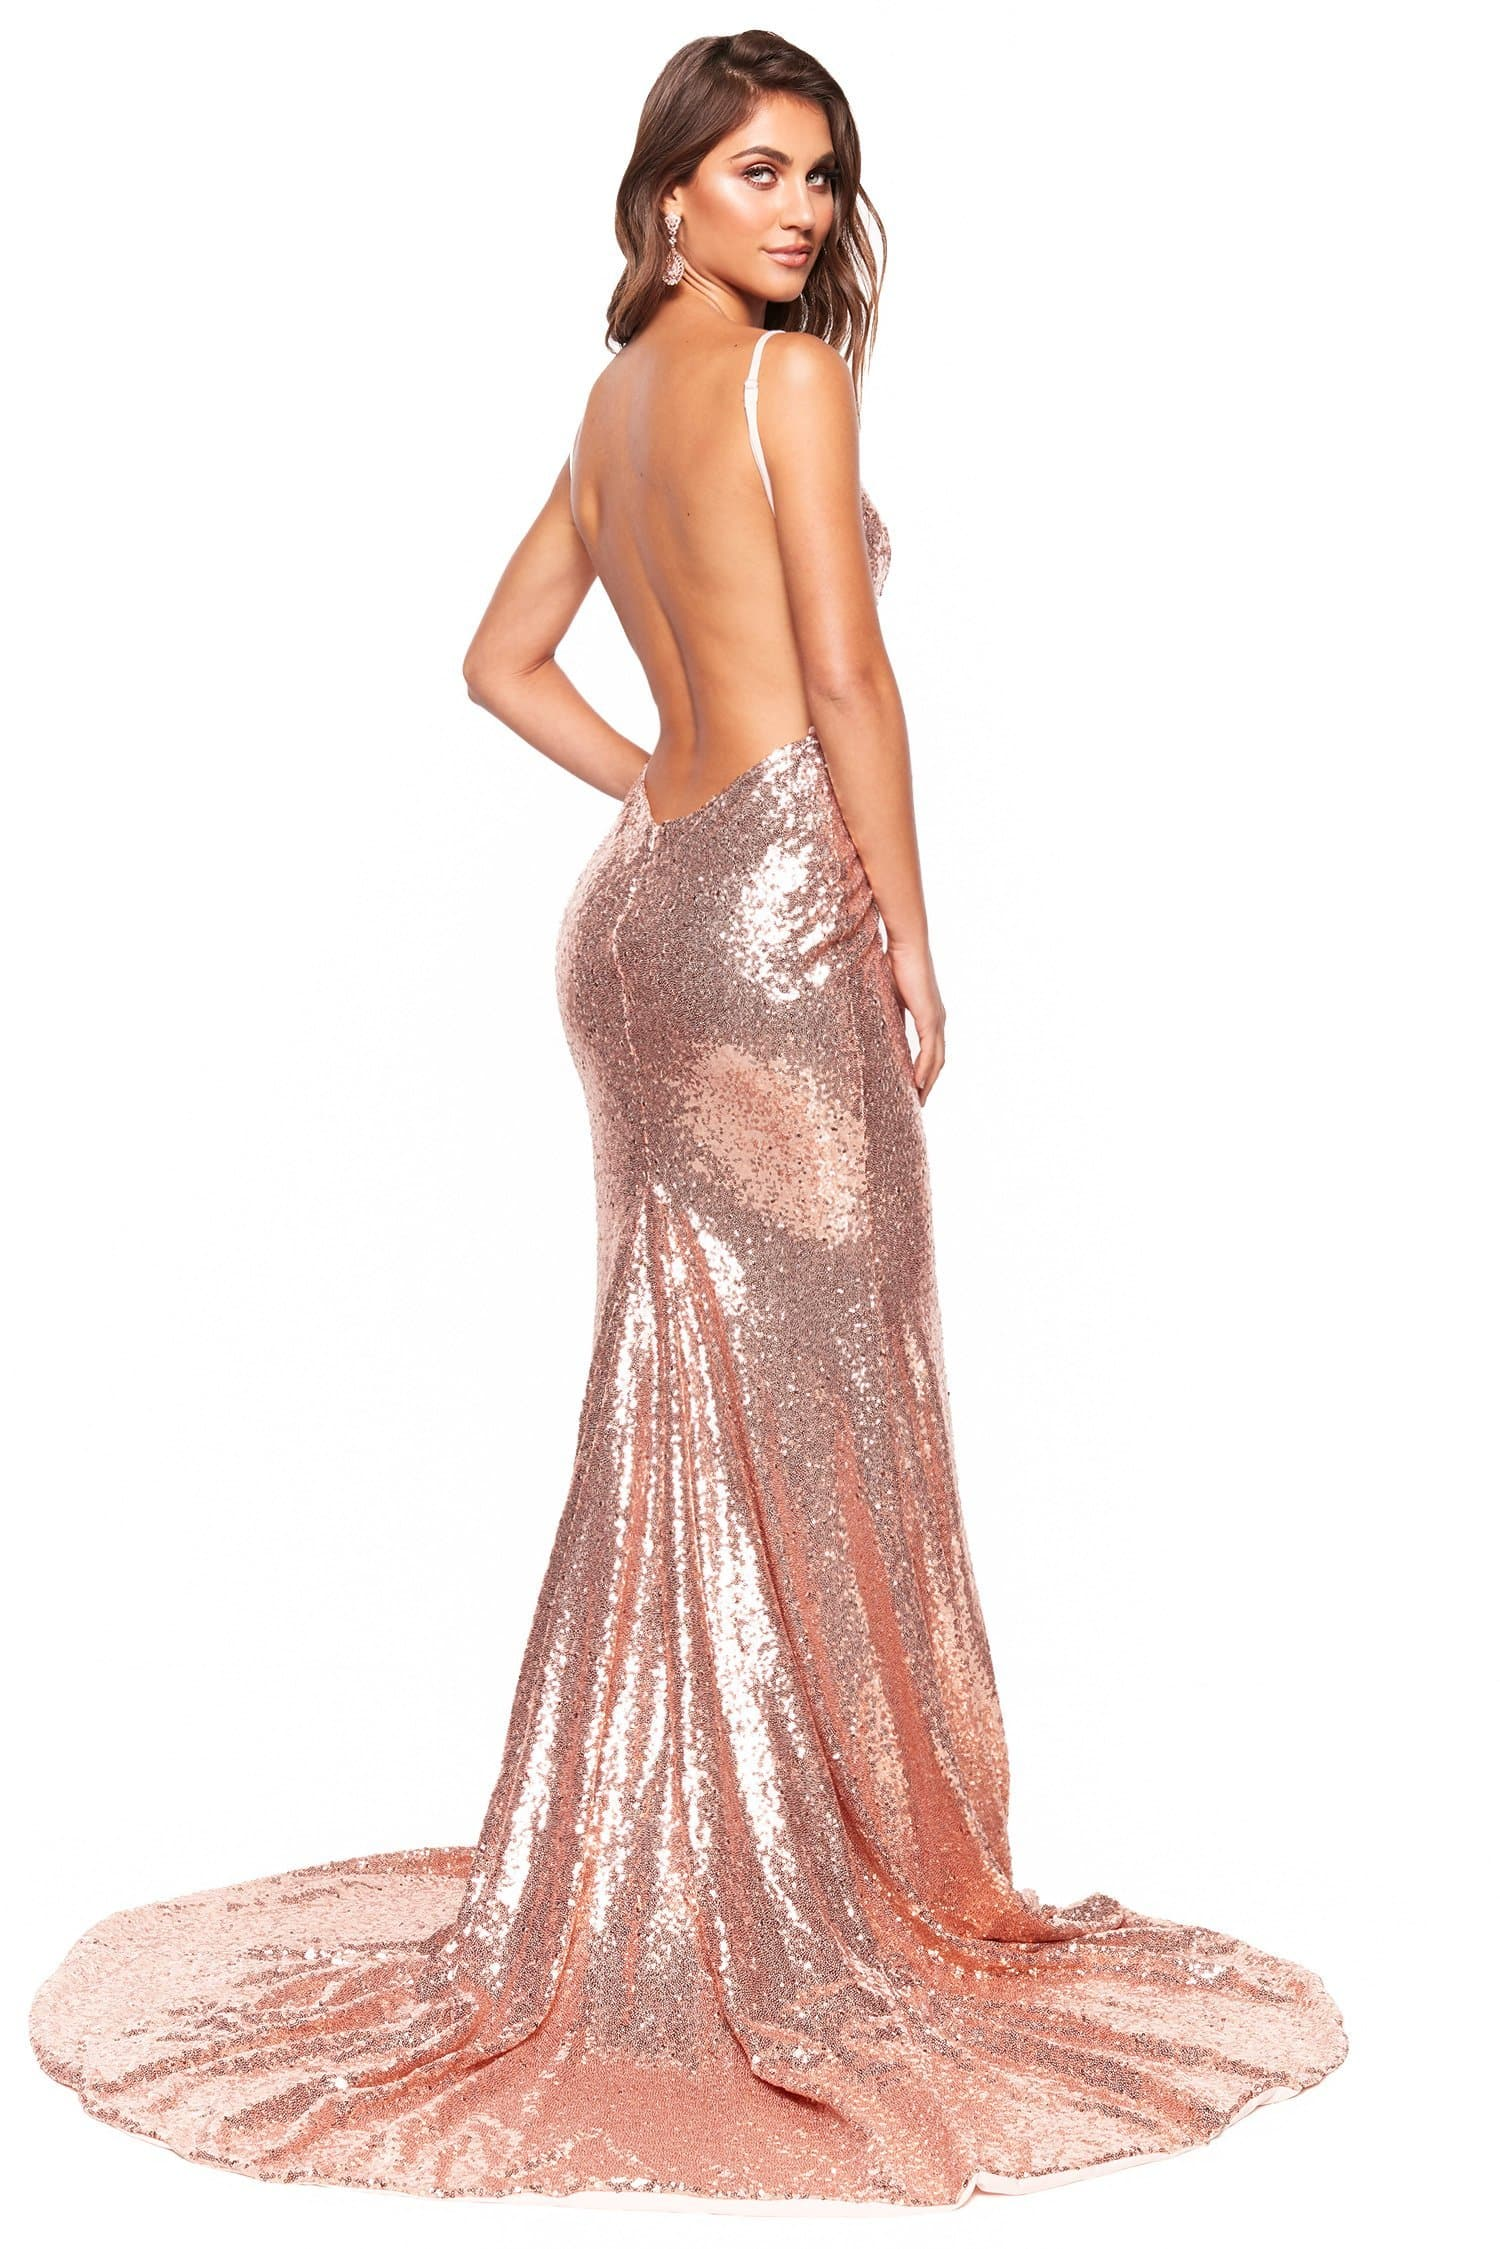 eb3cf92e3ba1f A N Luxe Hailey - Rose Gold Plunge Neck Mermaid Sequin Gown with Slit – A N  Luxe Label